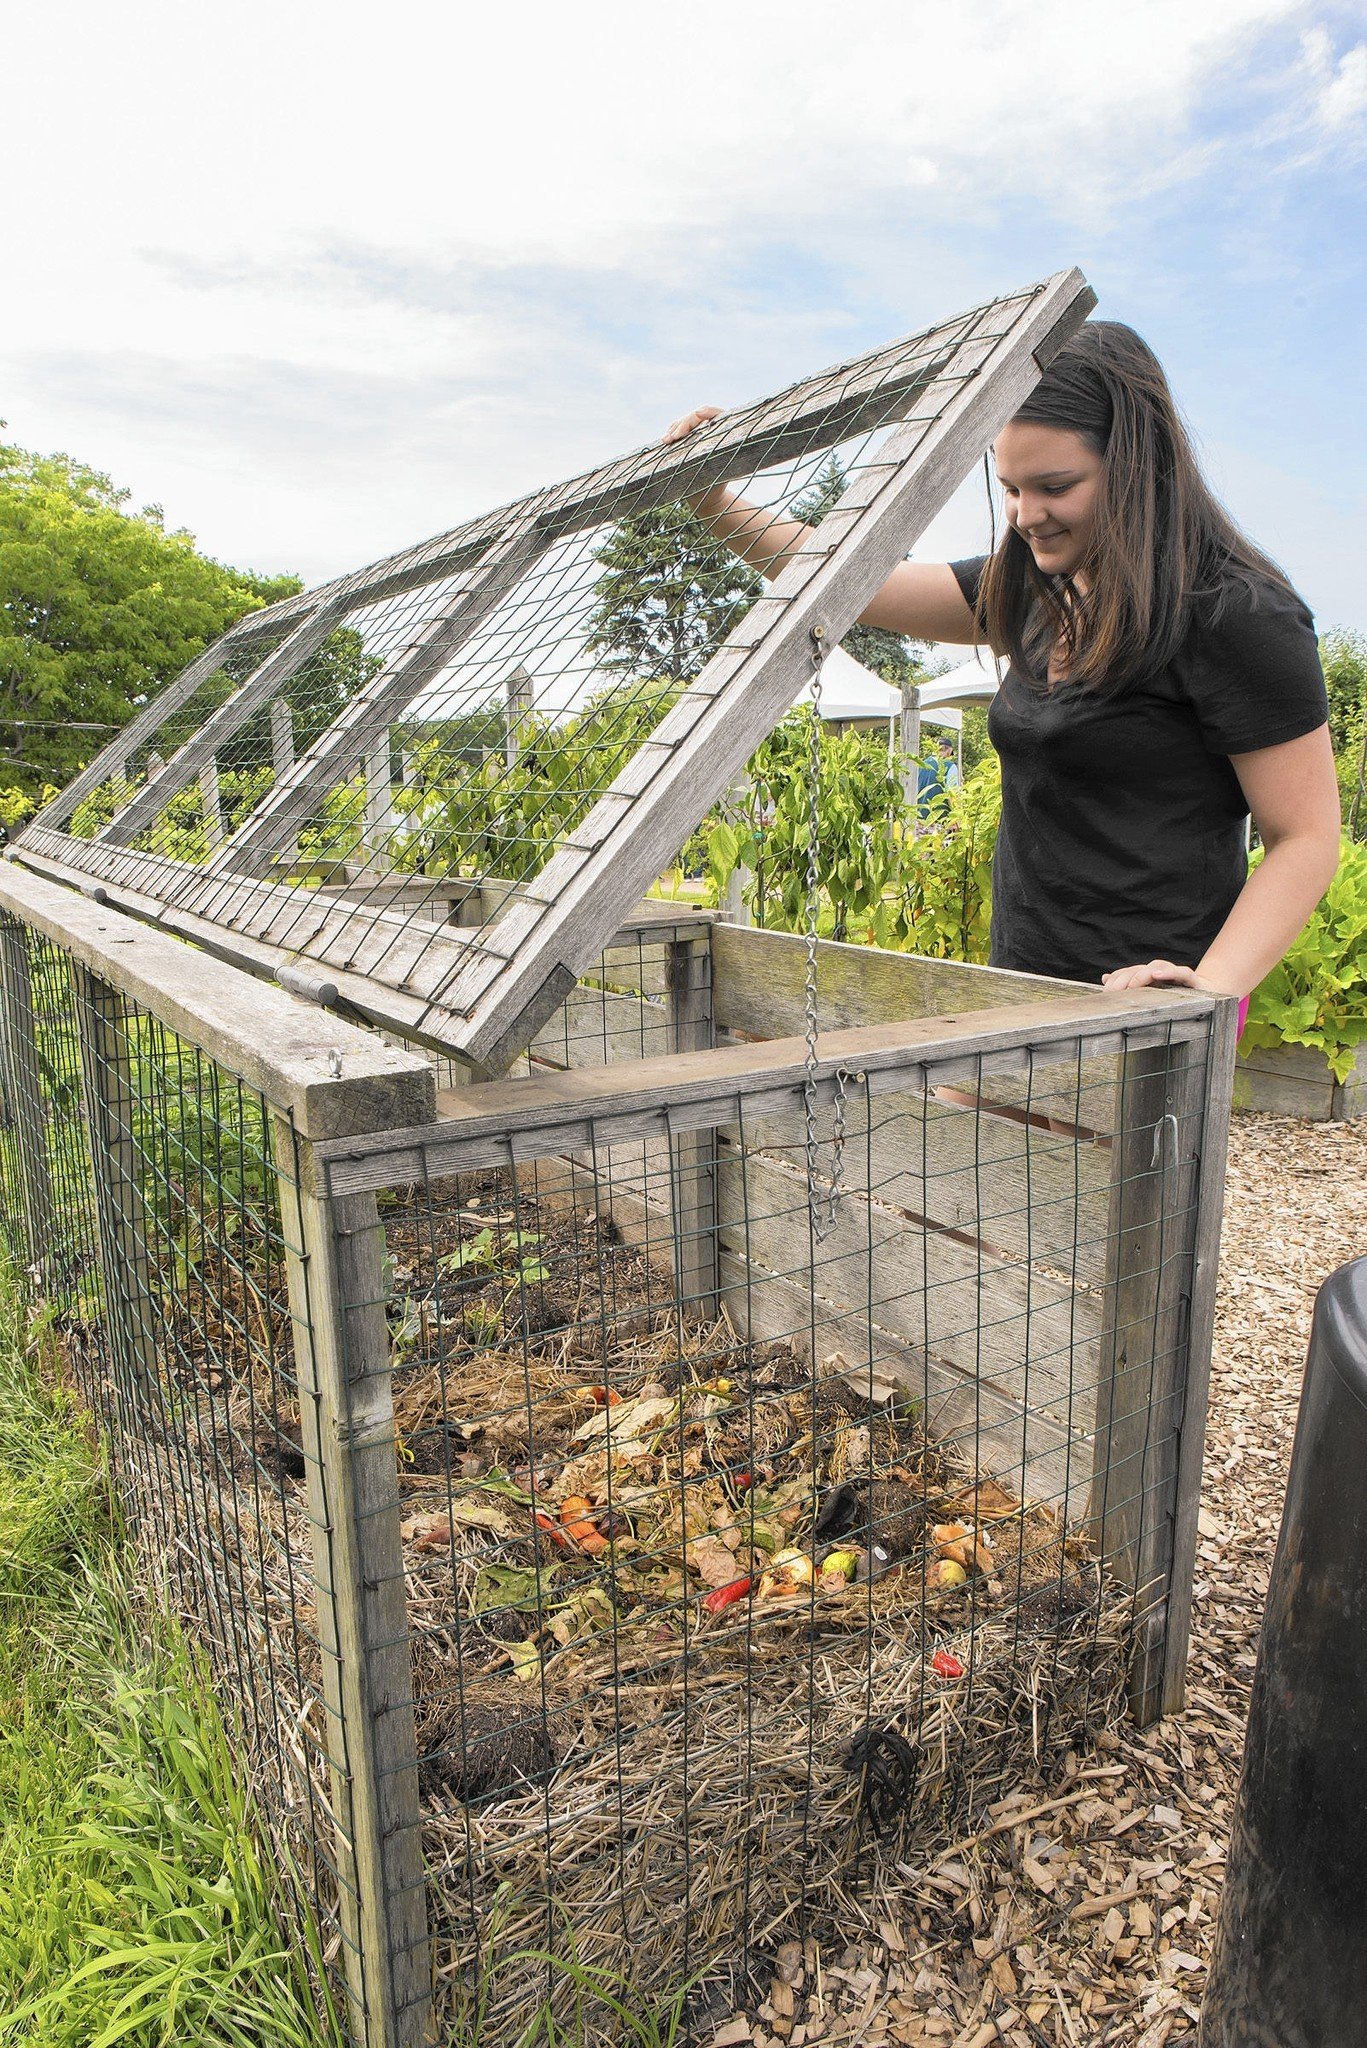 Simple steps for home composting success